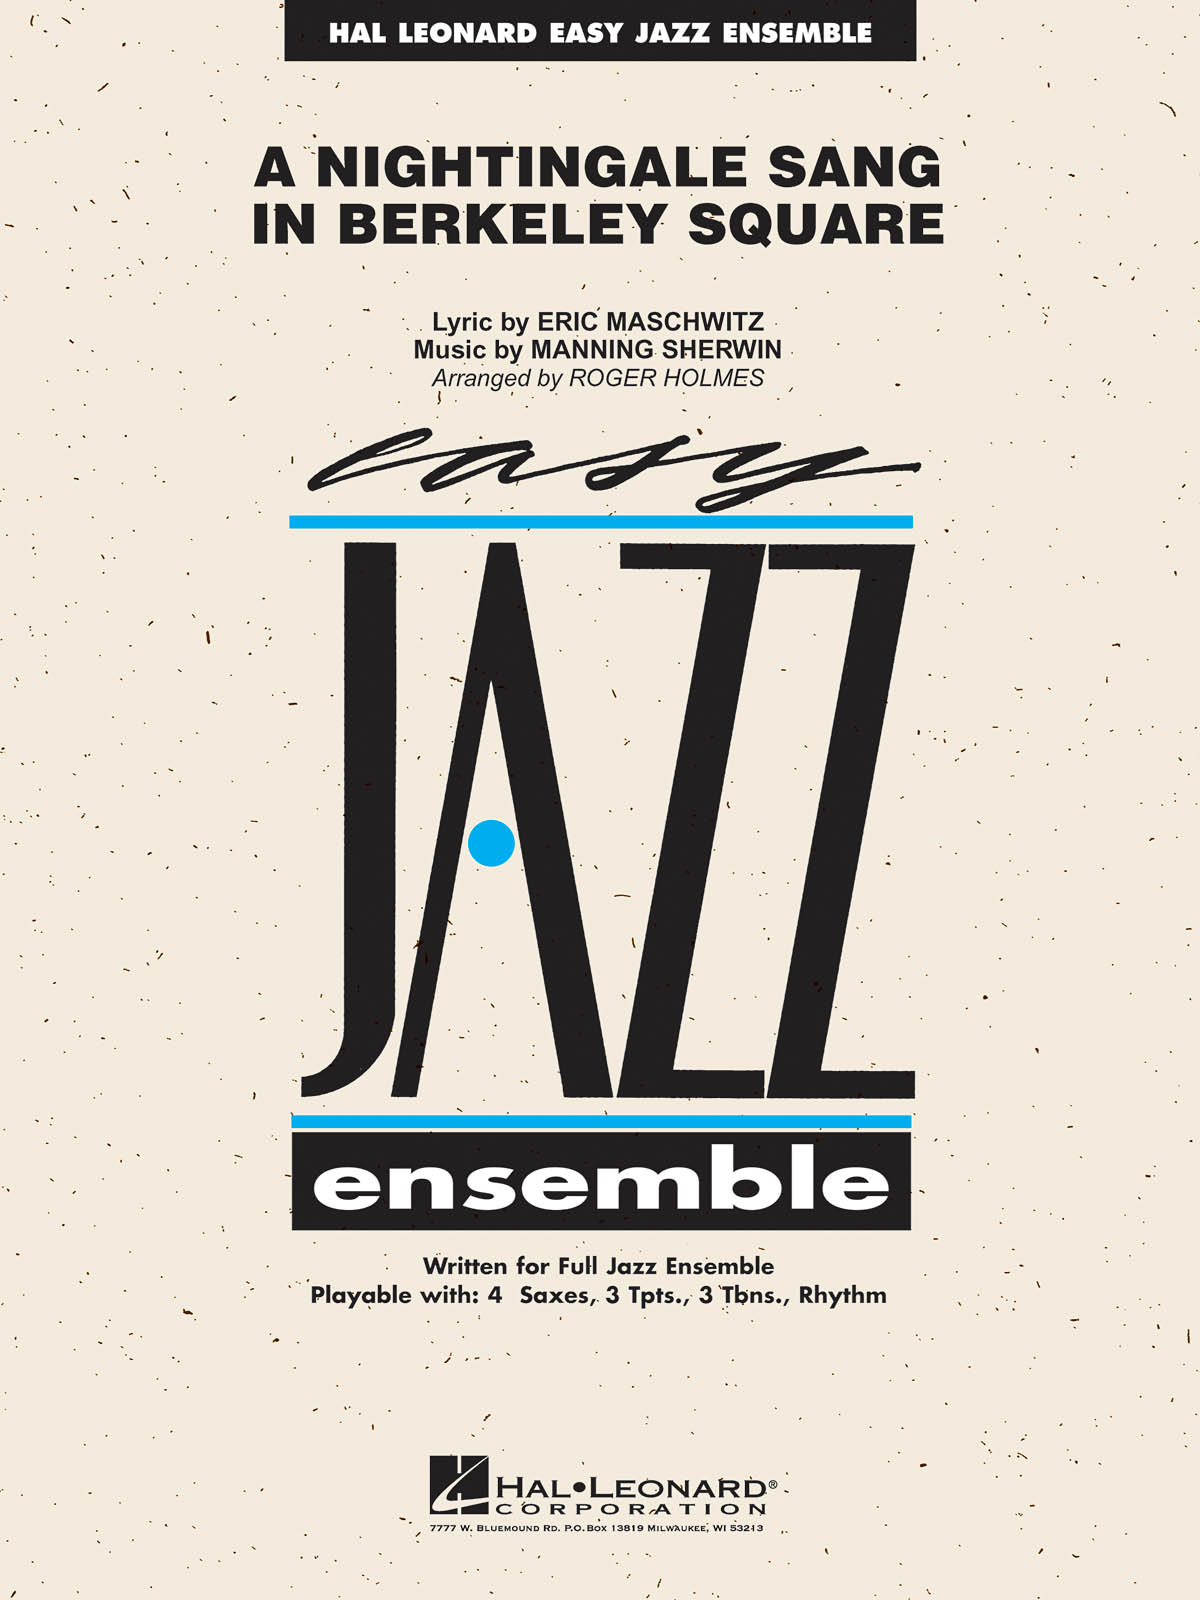 A Nightingale Sang in Berkeley Square: Easy Jazz Ensemble